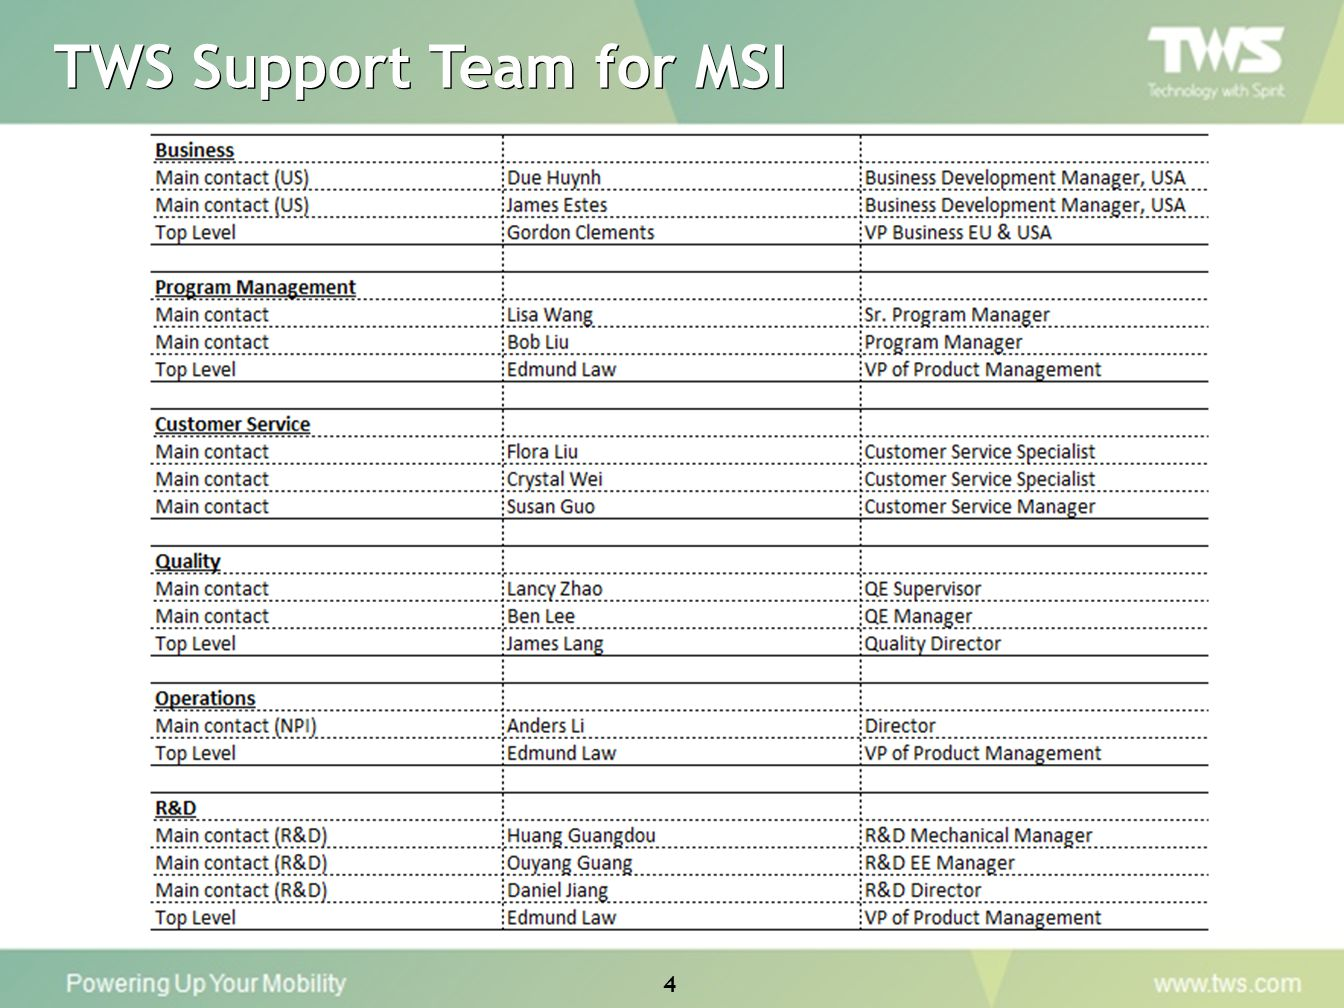 TWS Support Team for MSI